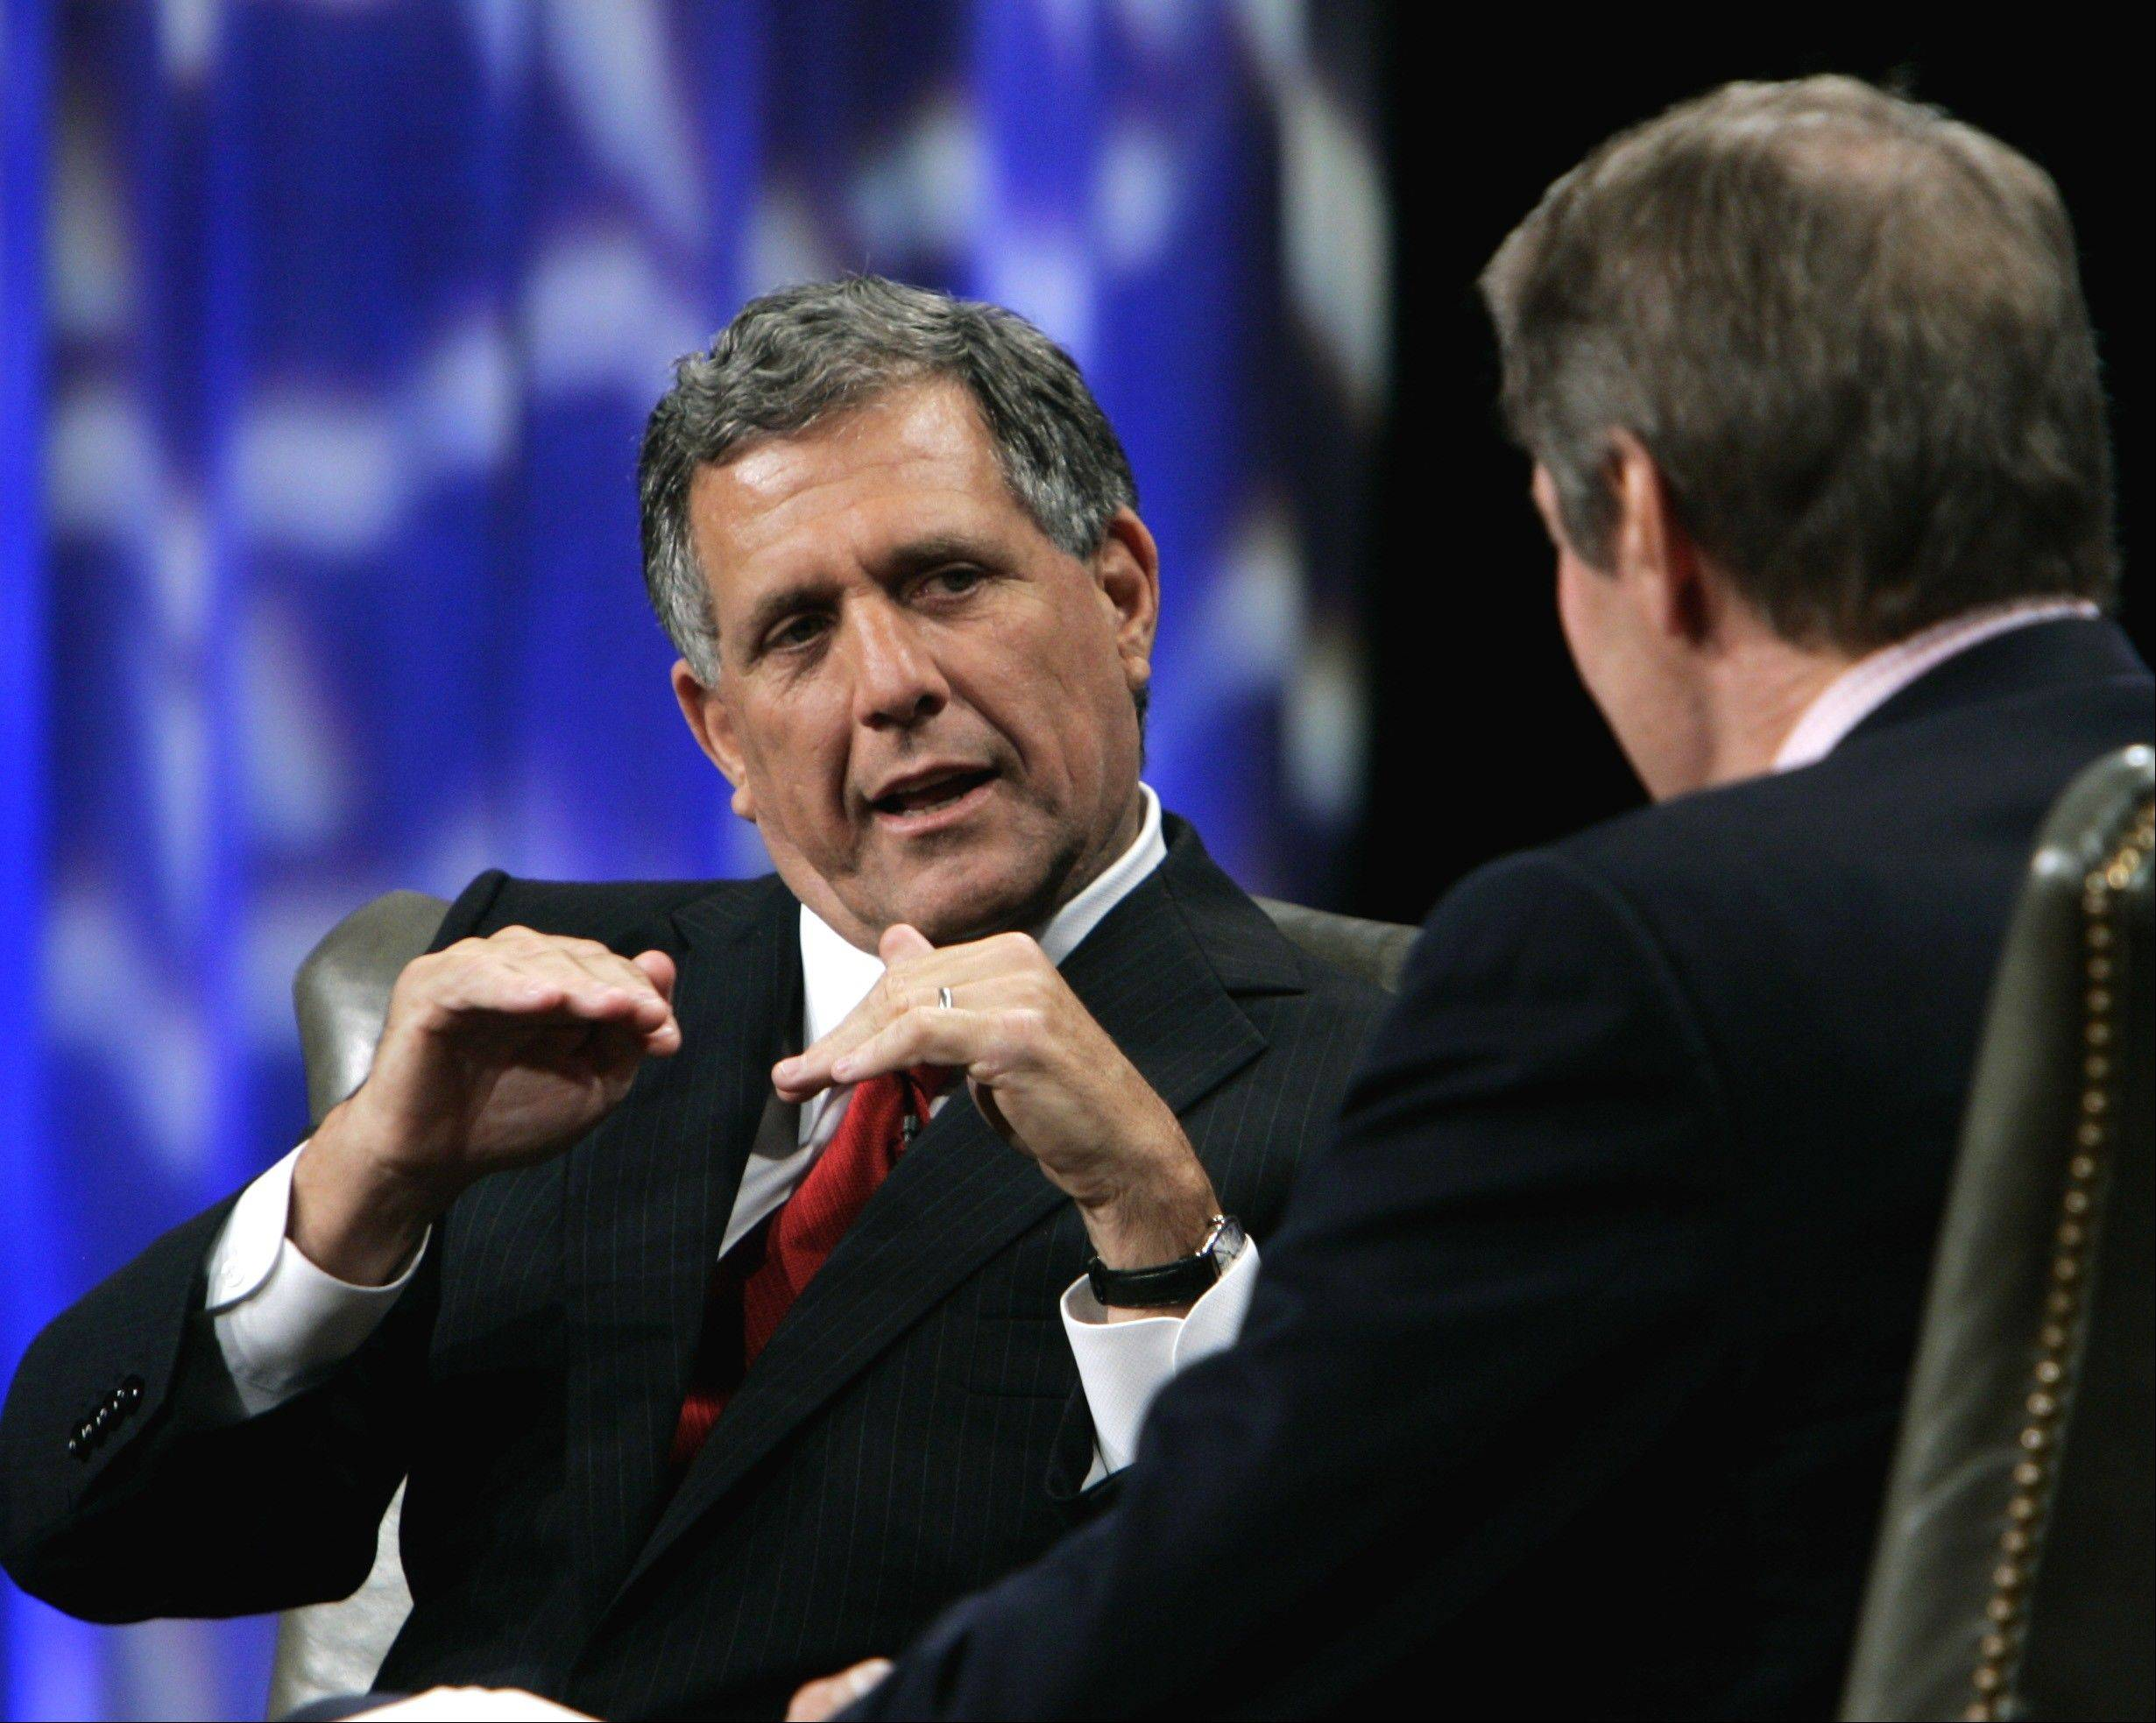 ASSOCIATED PRESS Leslie Moonves, left, president and chief executive officer of CBS, seen with PBS host Charlie Rose, was the highest paid CEO in 2012. He made $60.3 million.